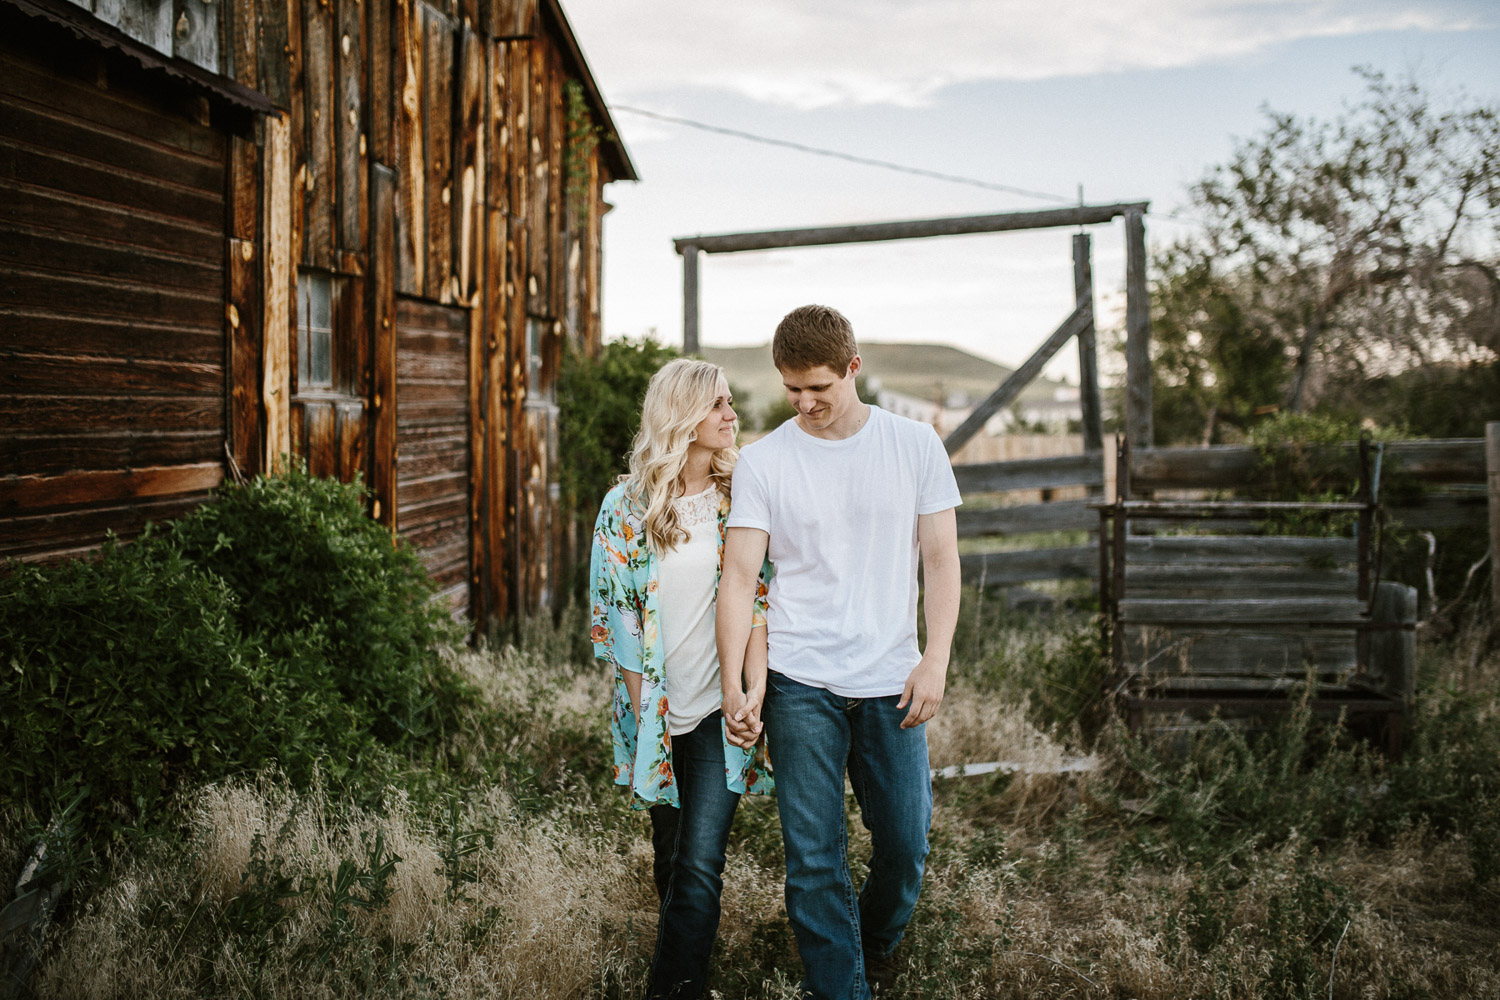 SiouxFalls_BlackHills_Adventure_Engagement_Wedding_Photographer_23.jpg